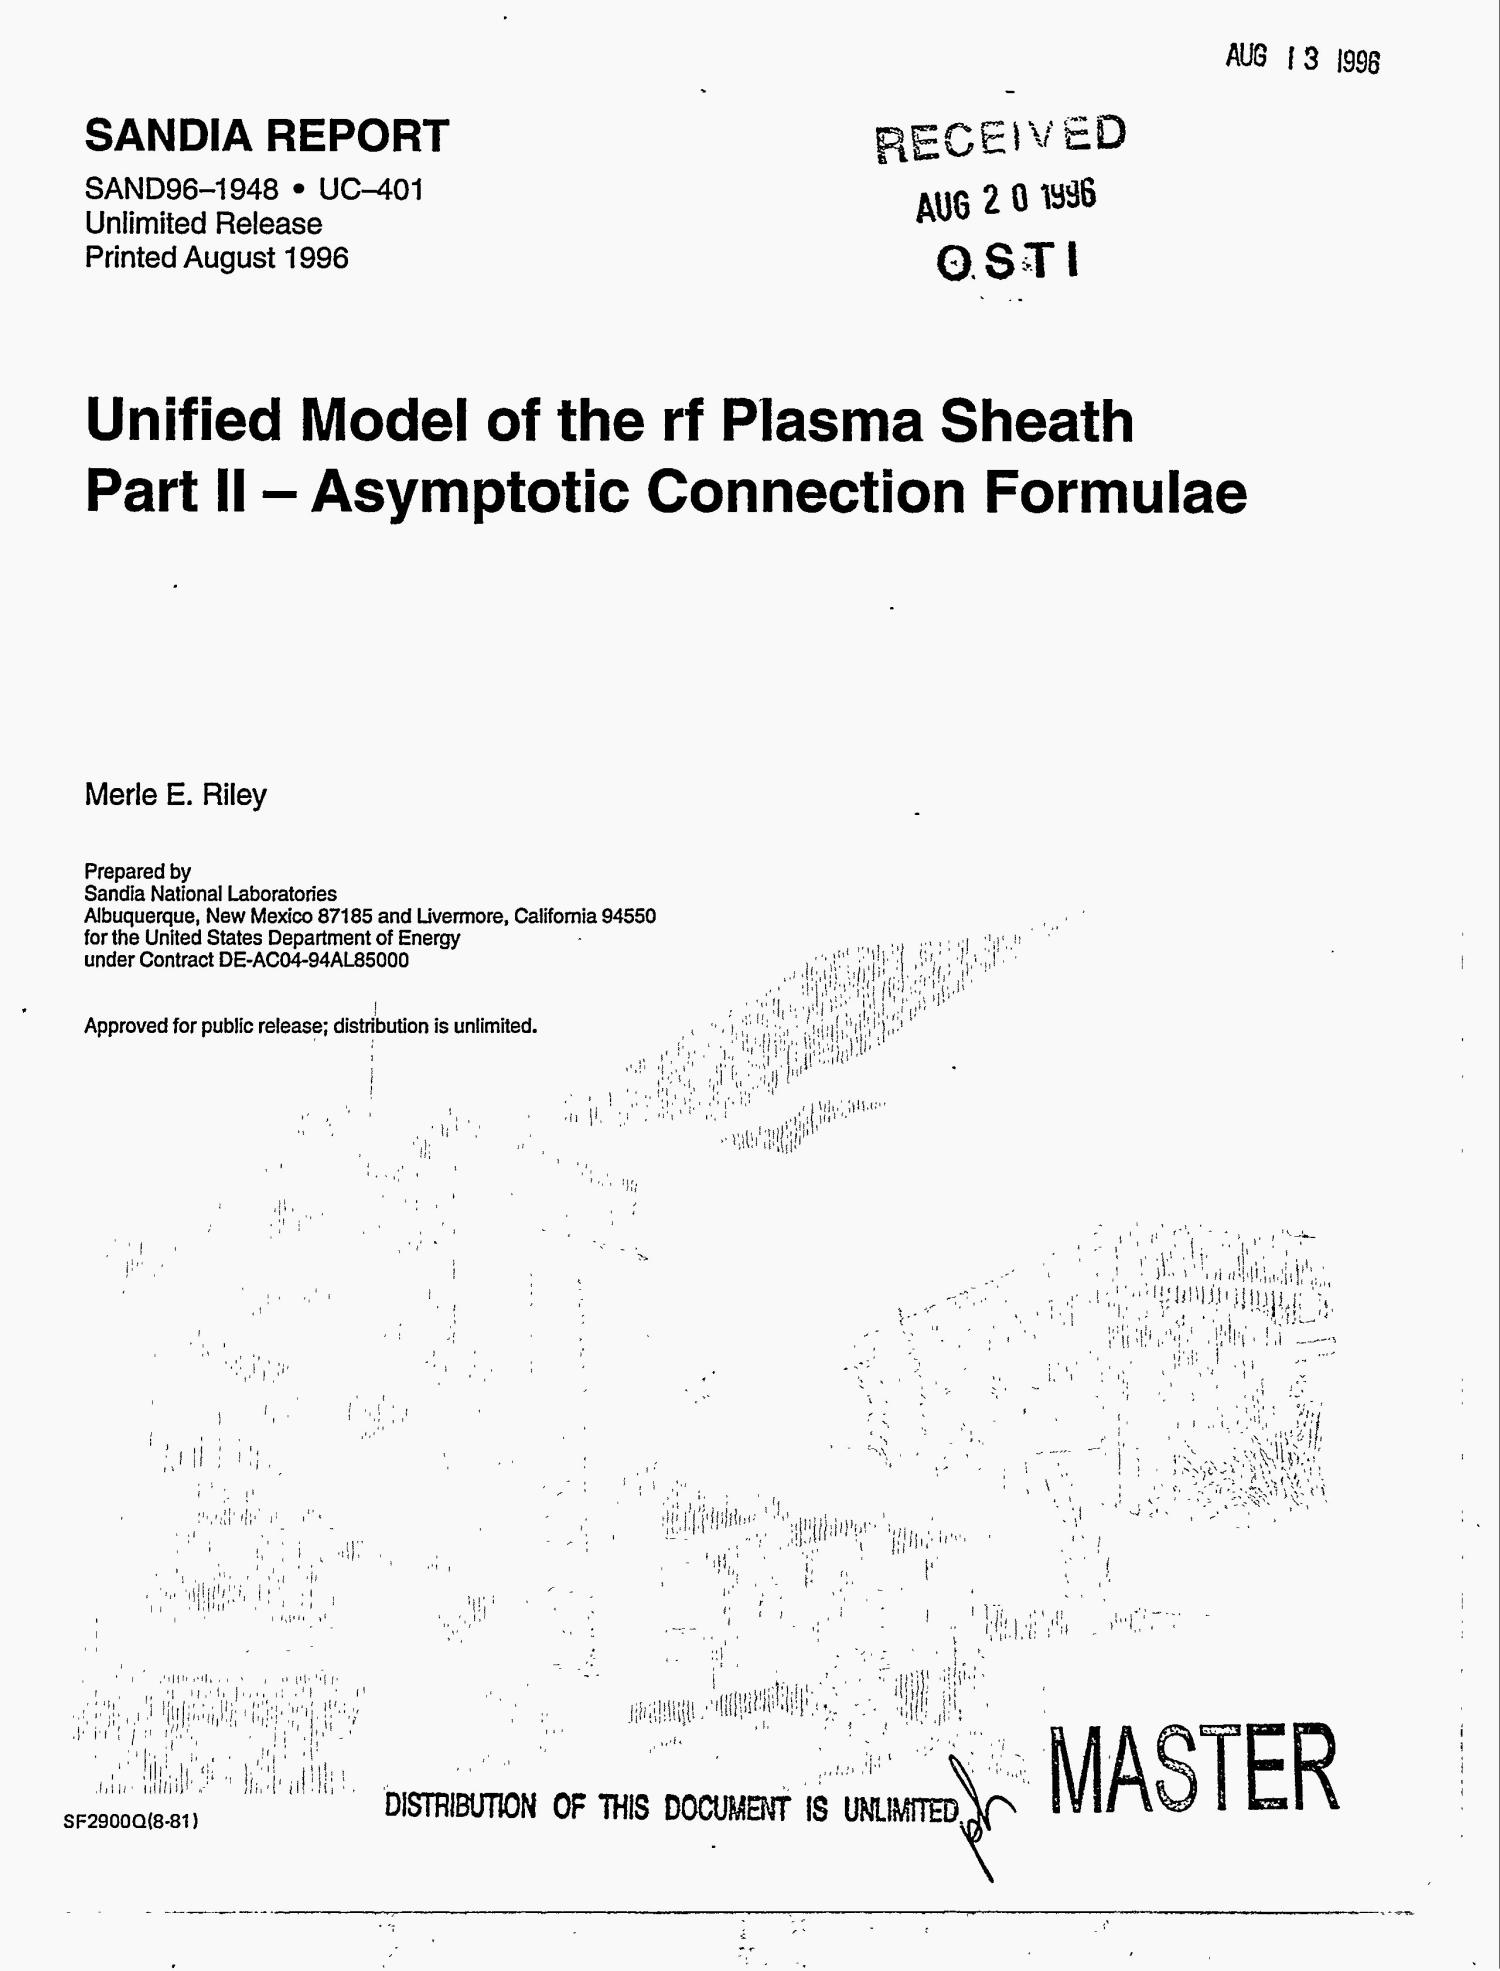 Unified model of the rf plasma sheath: Part 2, Asymptotic connection formulae                                                                                                      [Sequence #]: 1 of 69